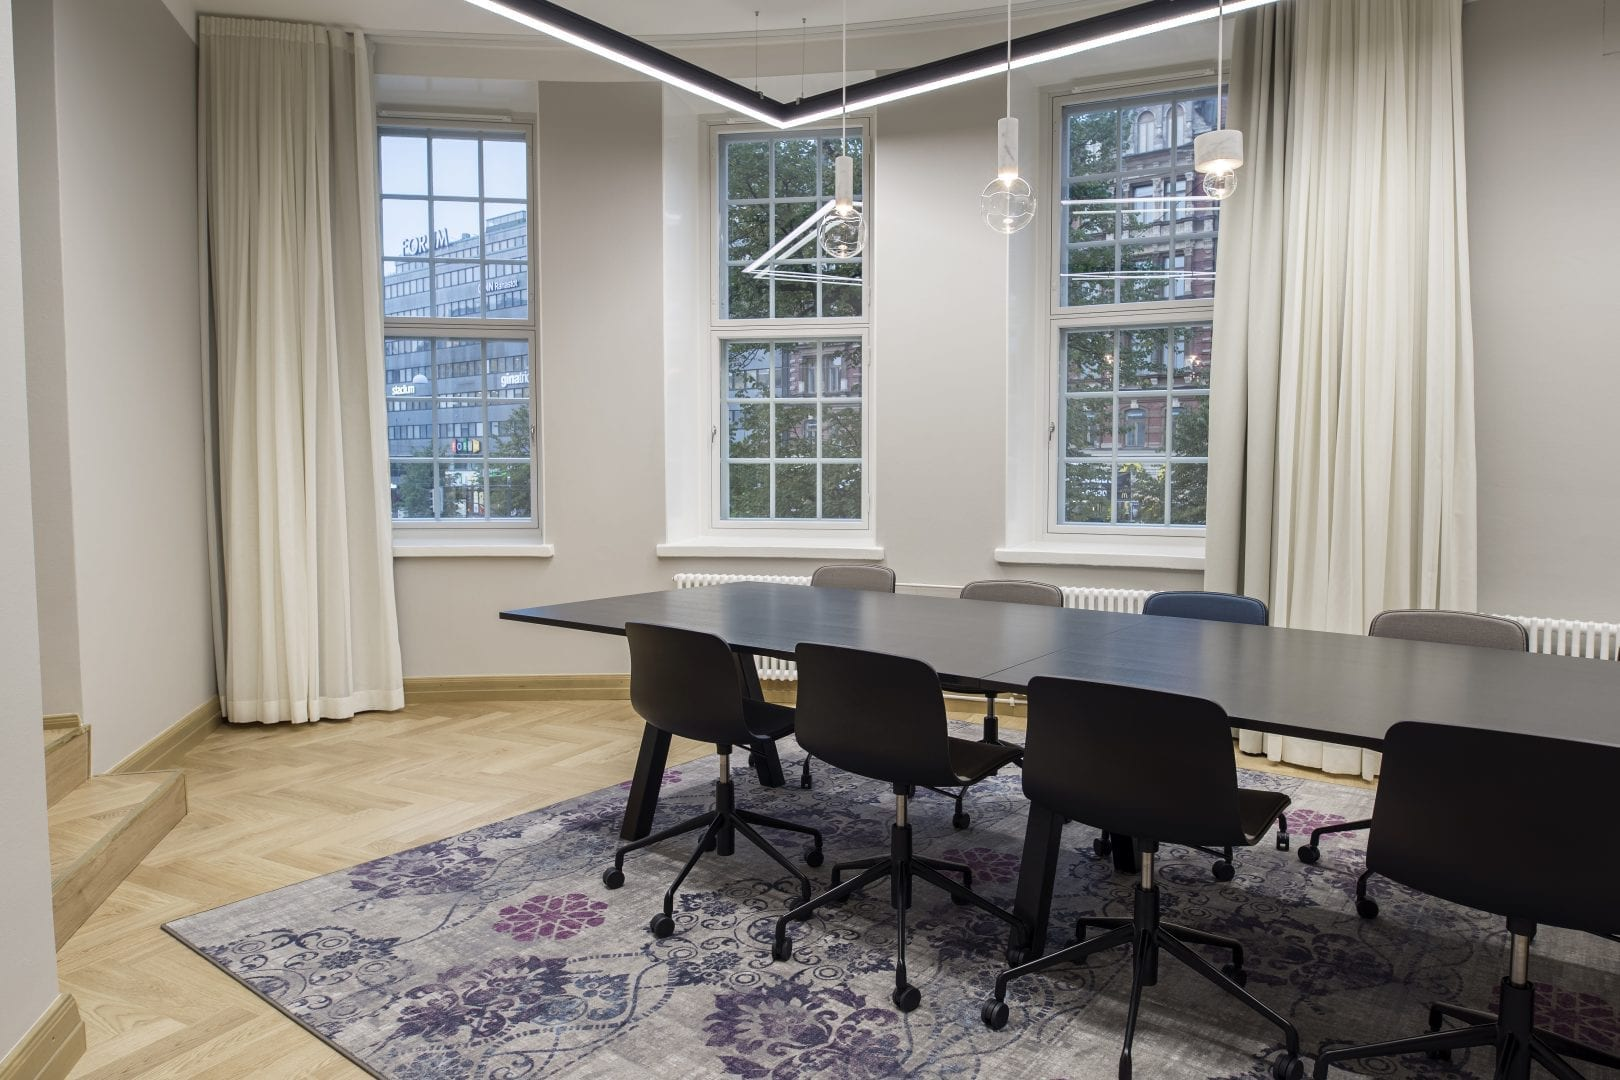 A photo from inside a light-colored meeting room. There's three tall windows with window sills and light long curtains on the sides. On the light wooden floor there's a light purple carpet. There's a black, long wooden desk and black chairs with wheels around it.